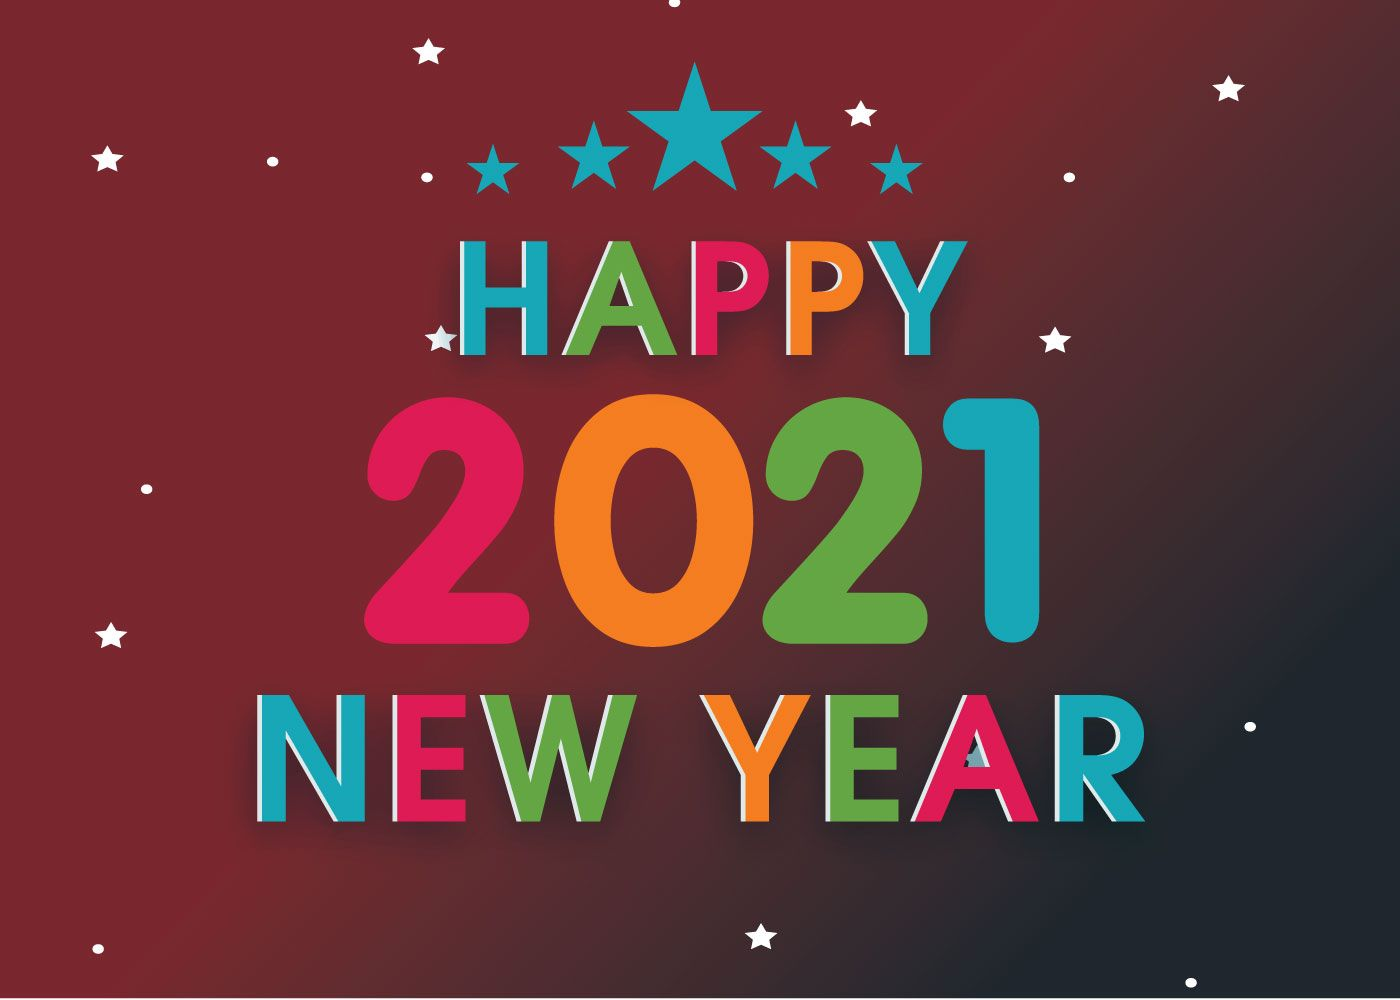 Stunning Happy New Year 2021 Images Happy New Year Wallpaper Happy New Year Greetings New Month Wishes